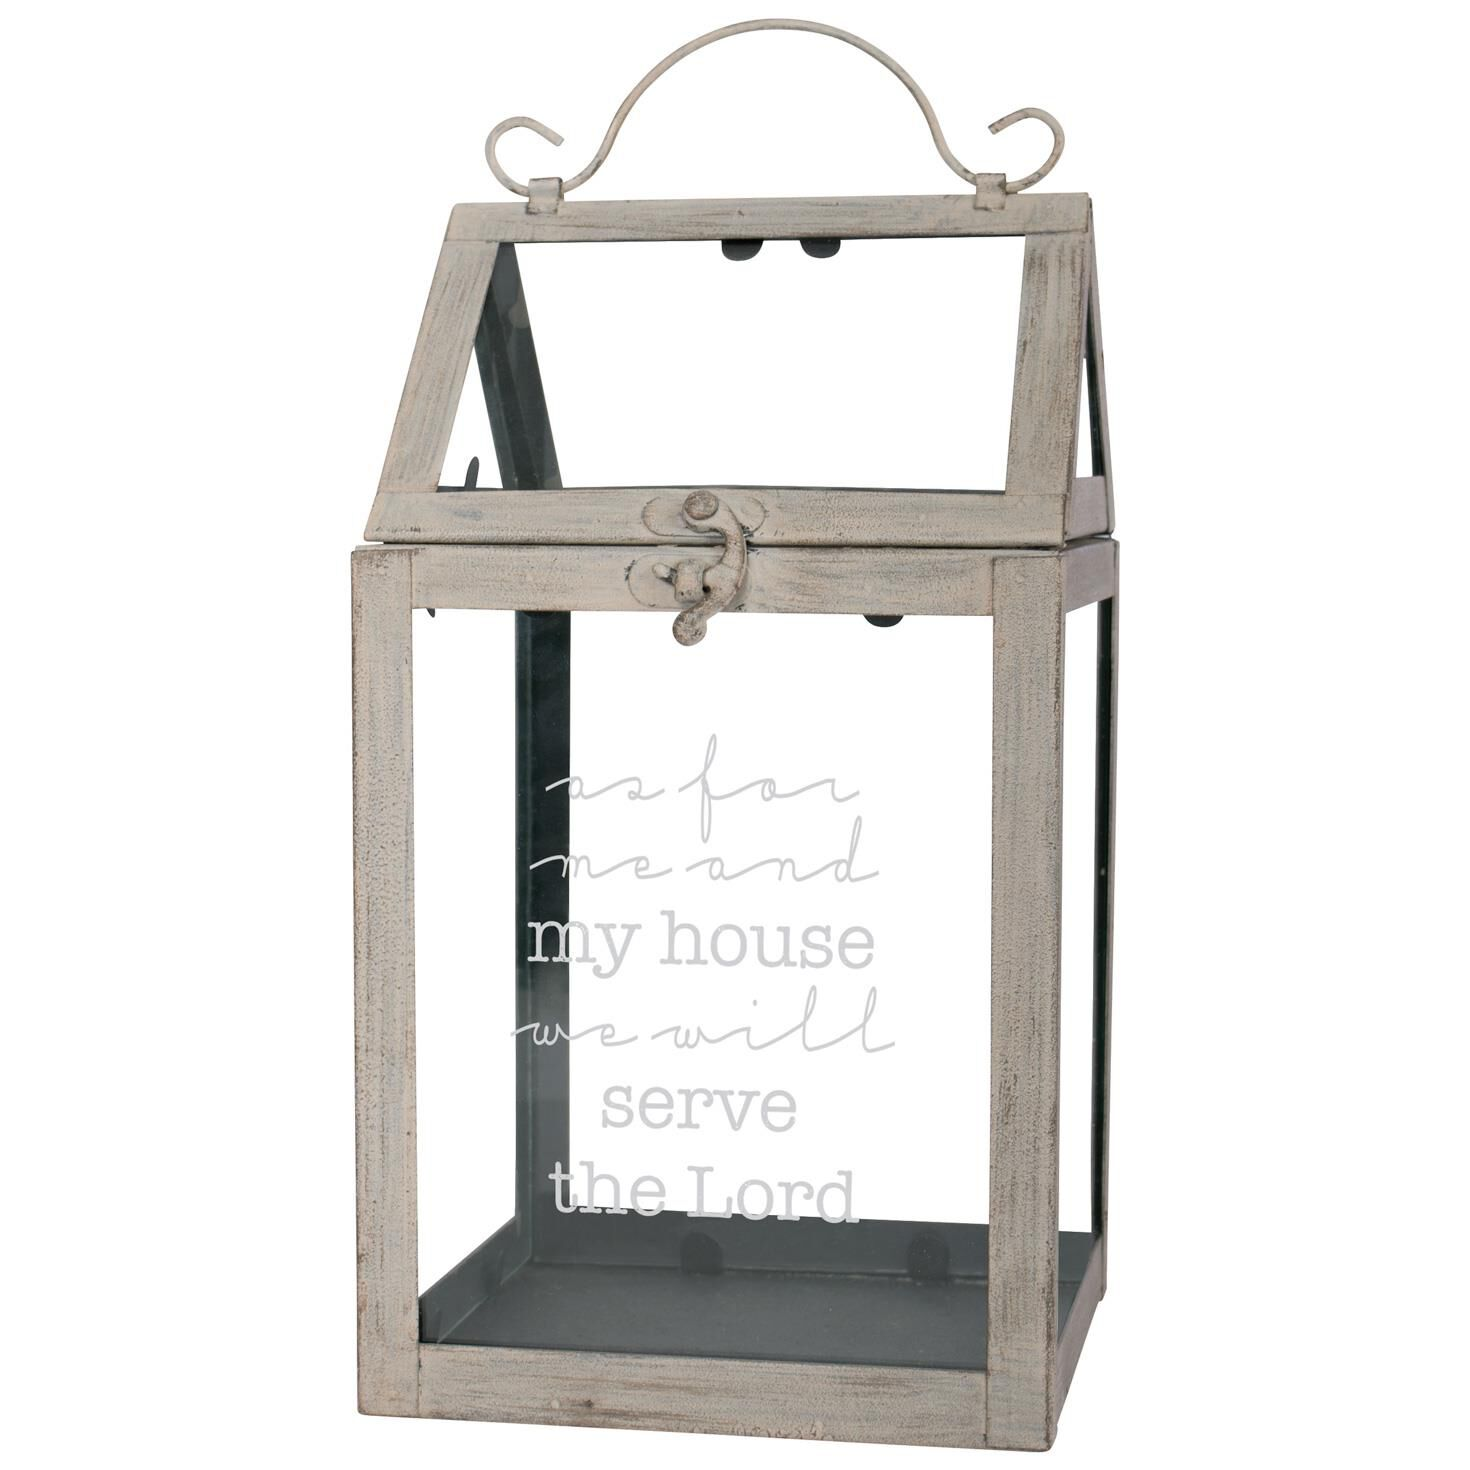 Serve The Lord Metal And Glass Tabletop Greenhouse